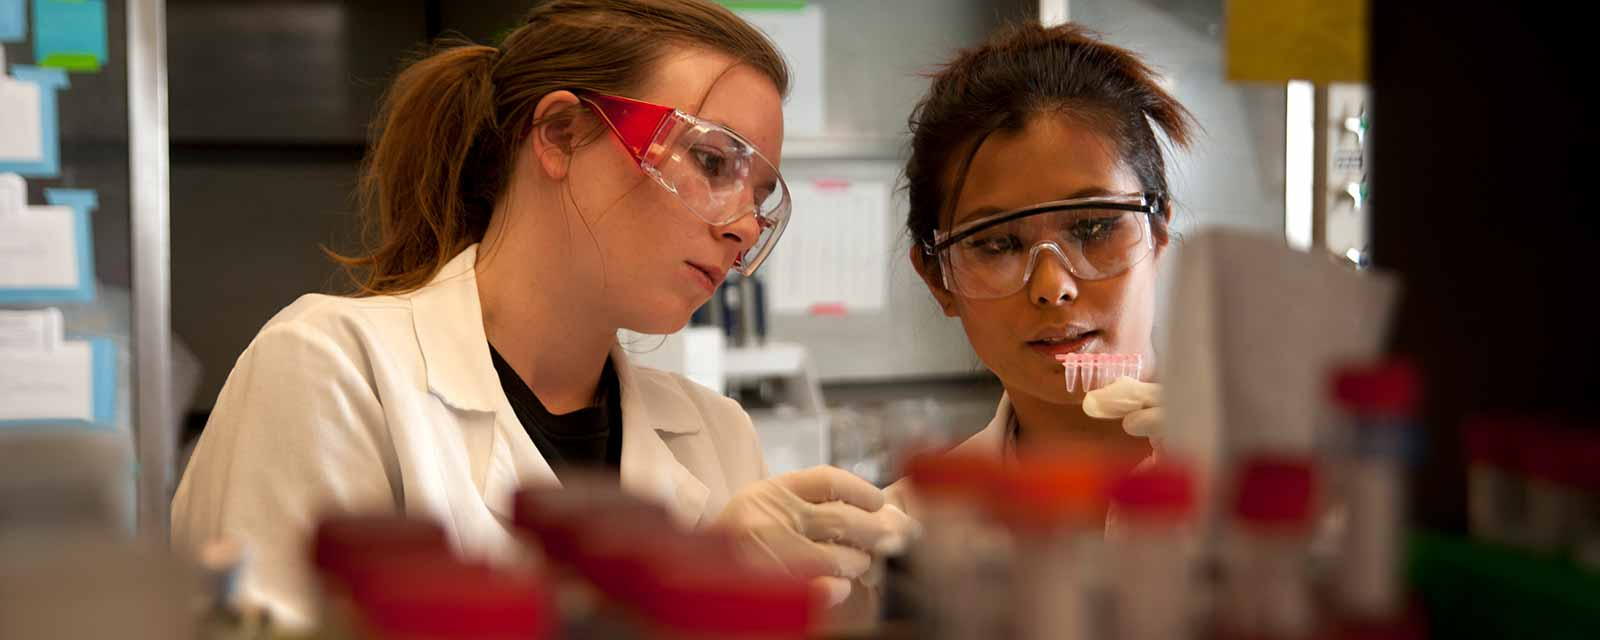 Two women in a lab